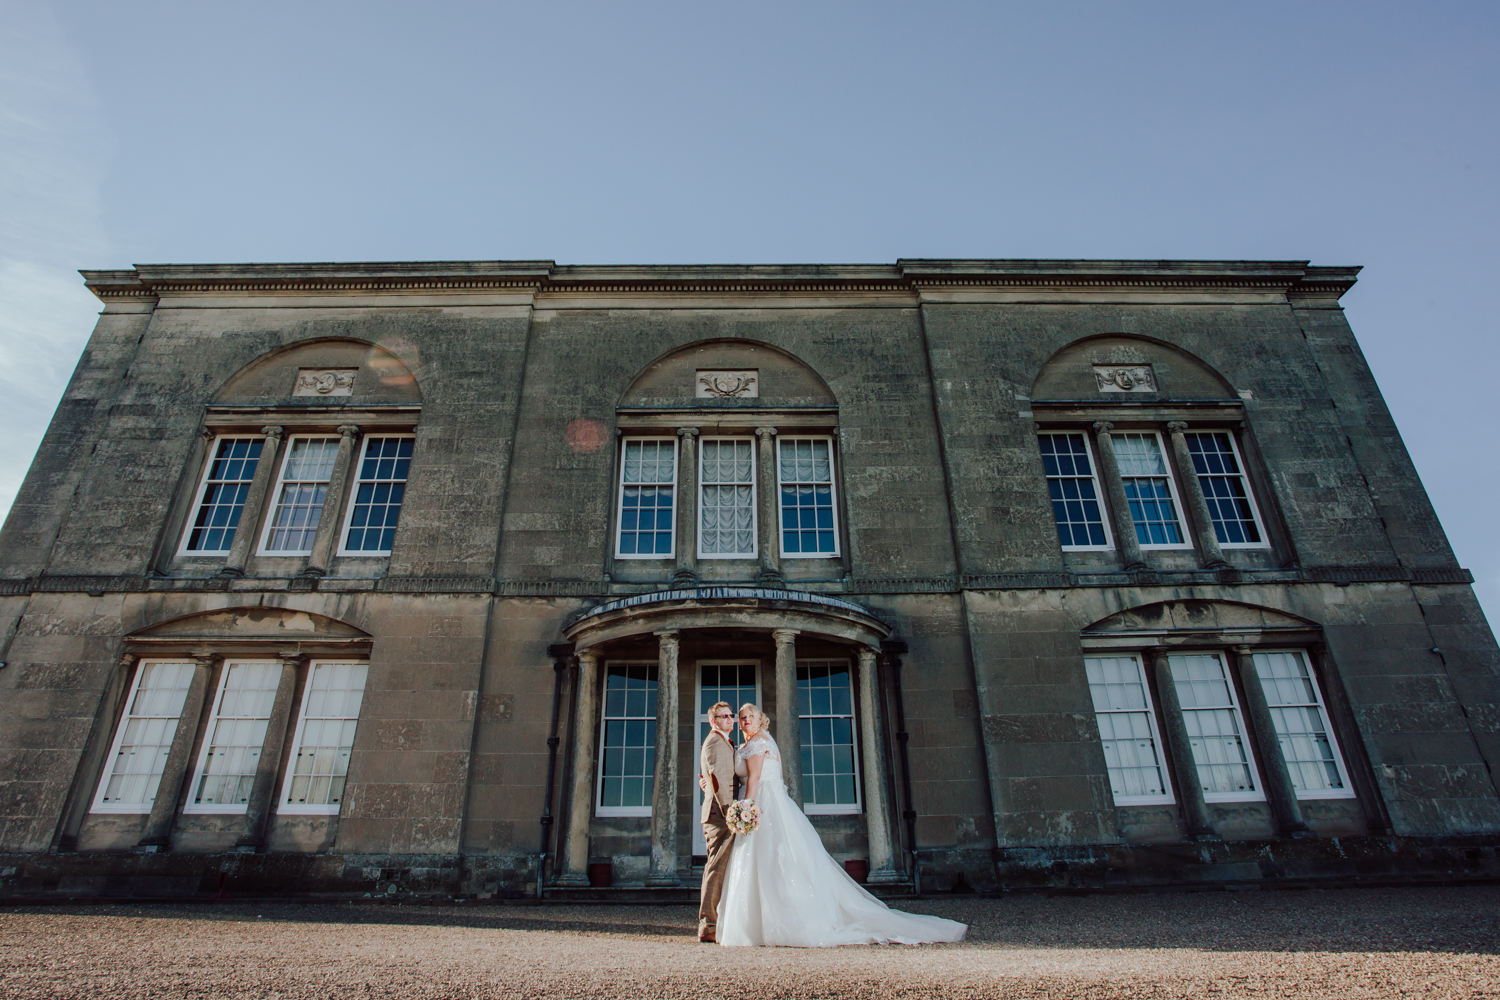 Yorkshire quirky wedding photographers sheffield-54.jpg